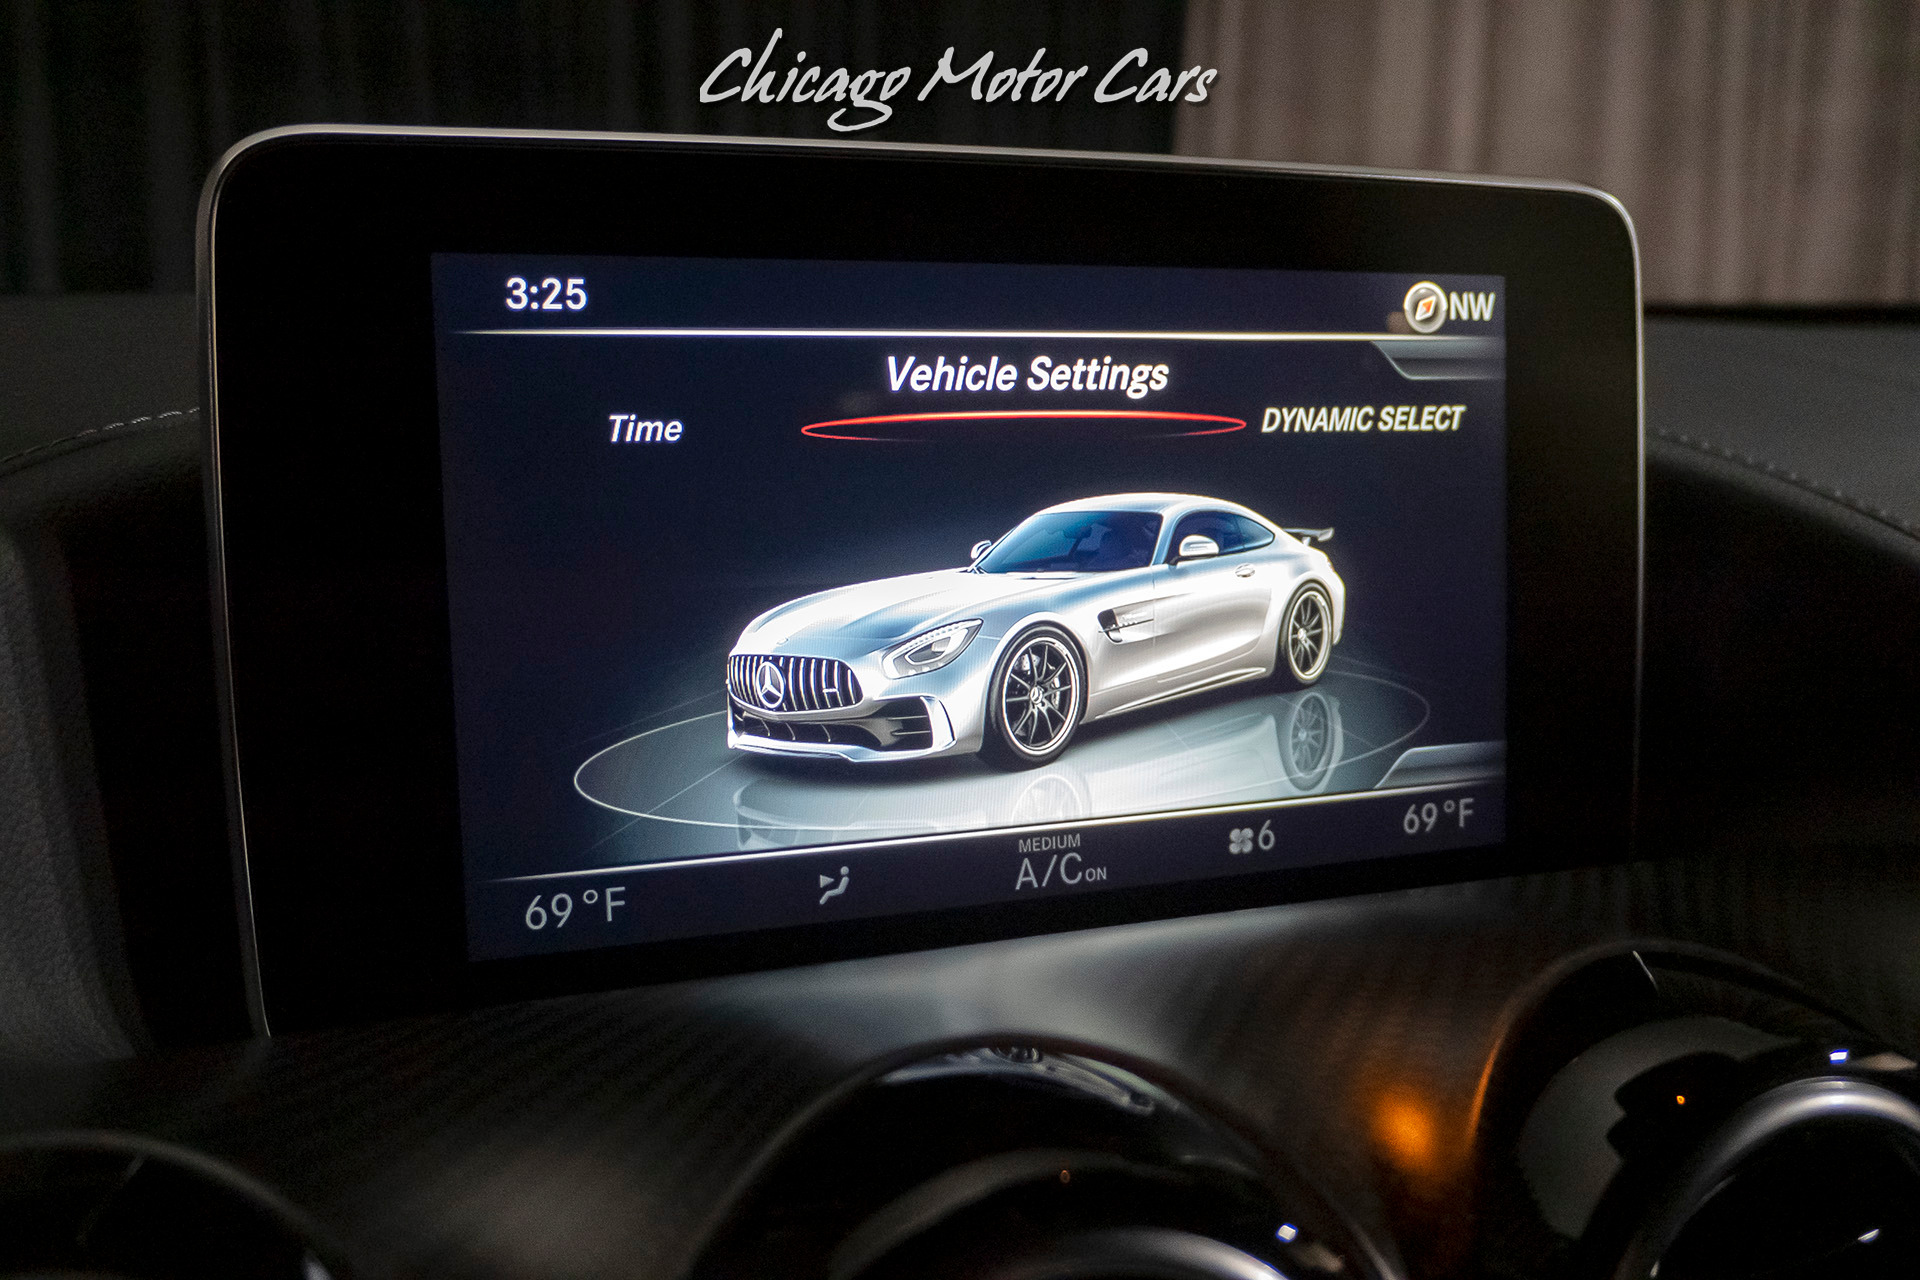 Used-2018-Mercedes-Benz-AMG-GTR-Coupe-GREEN-HELL-MAGNO-PAINT-MSRP-184k-CARBON-FIBER